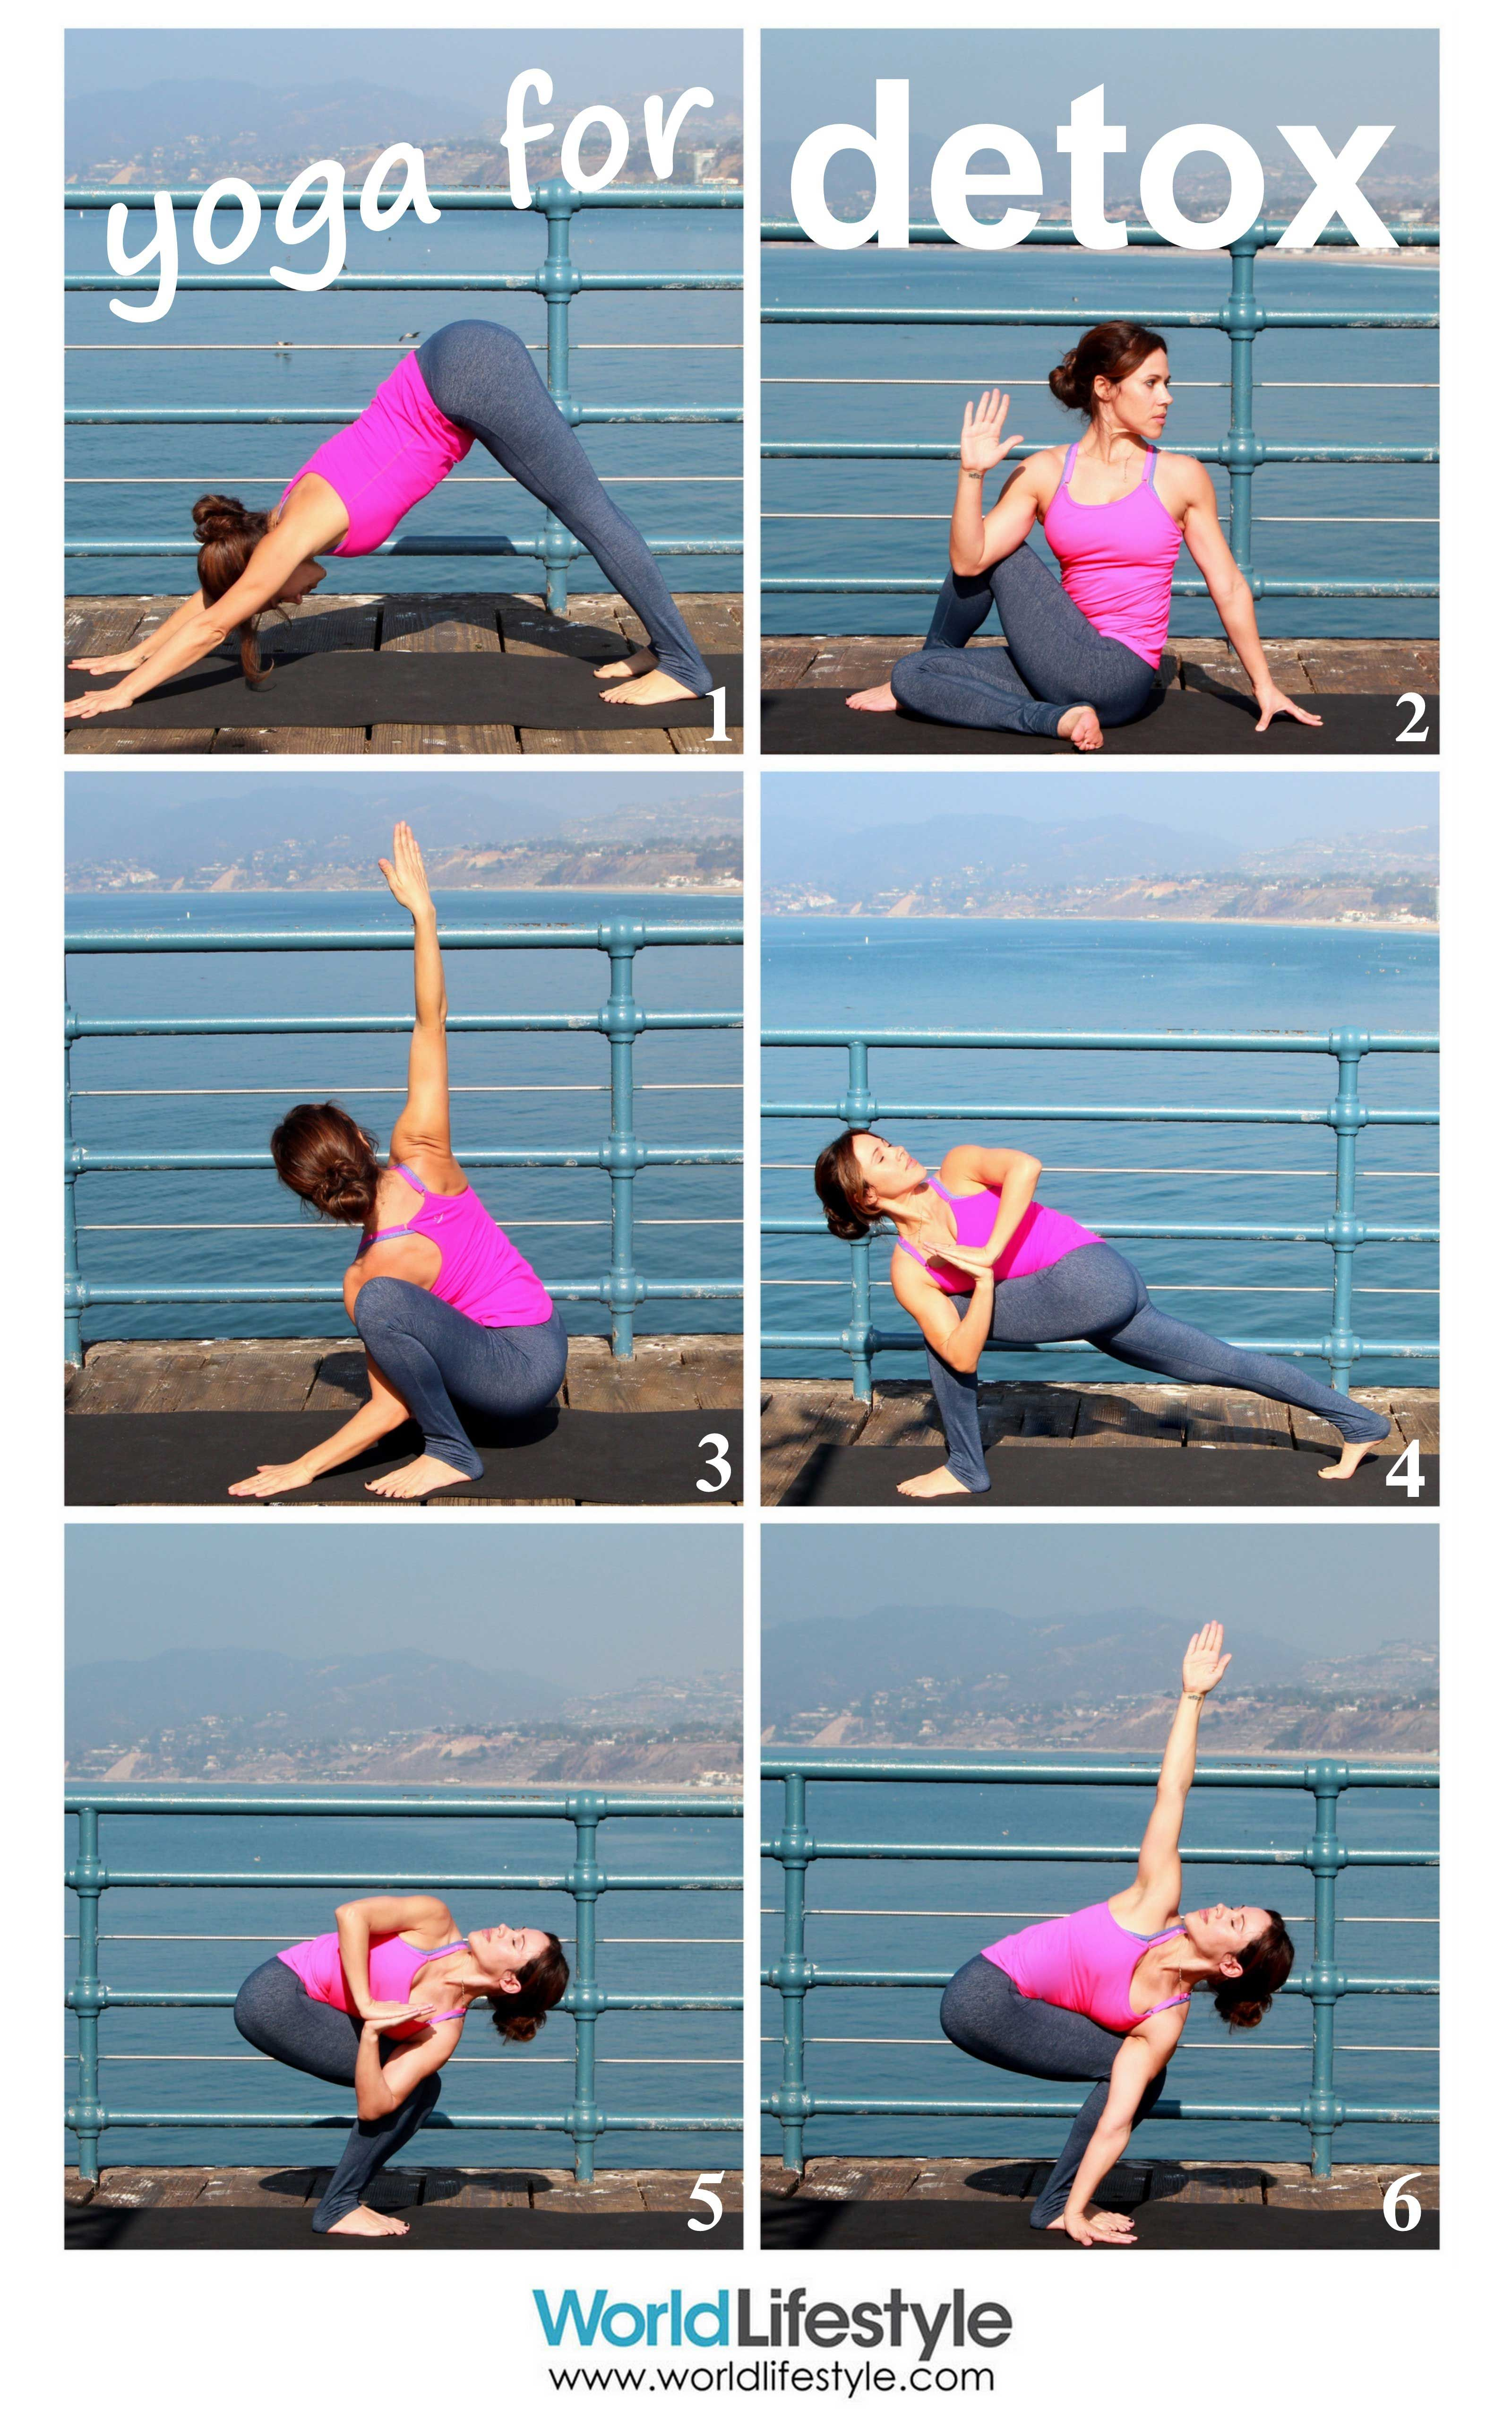 Yoga for Detox: Use these 6 twisting yoga poses to wring out